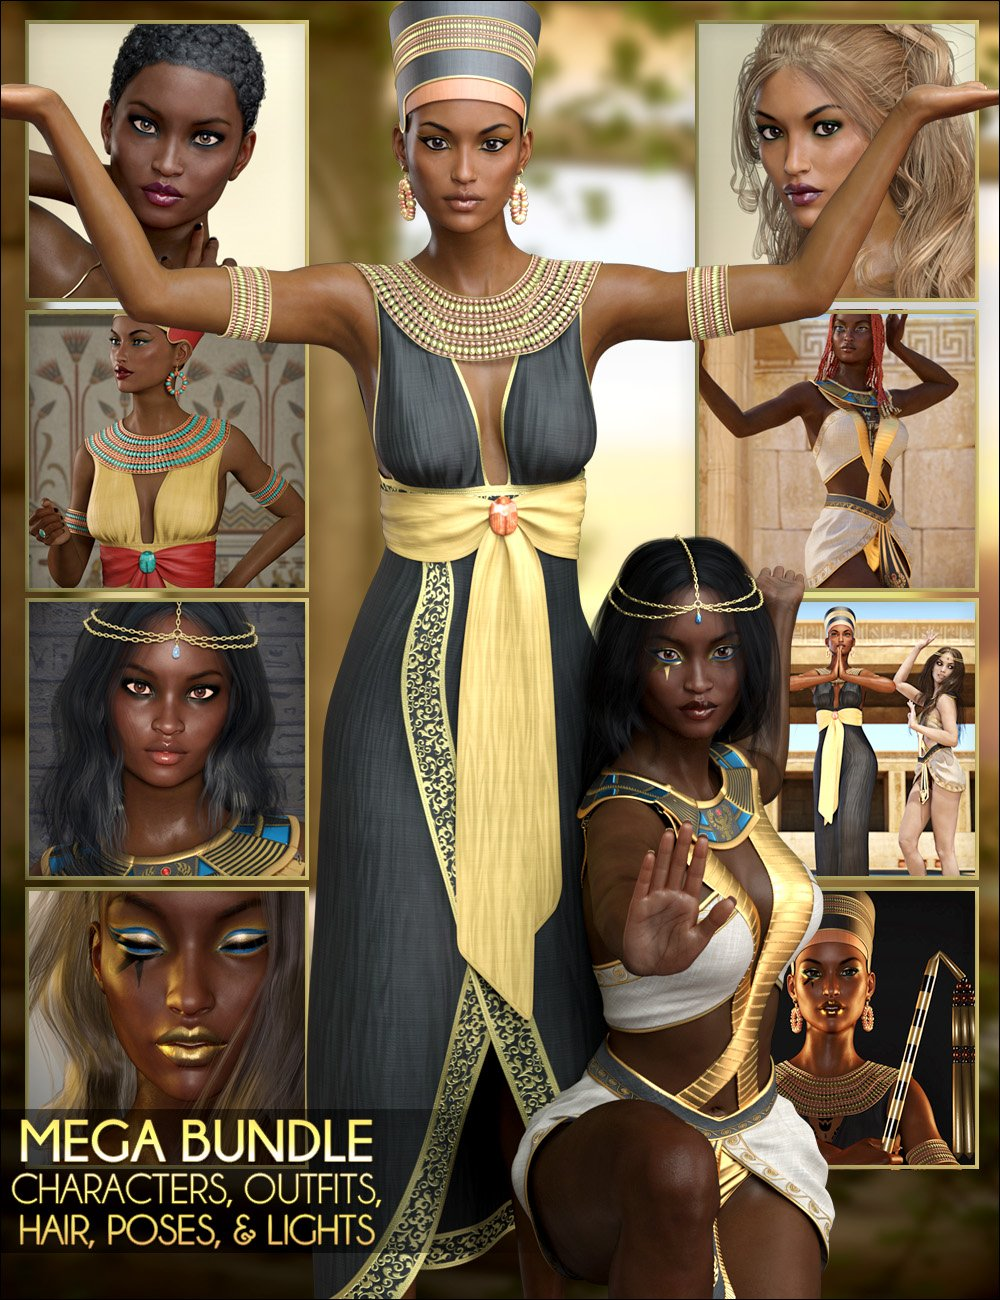 Egyptian MEGA Bundle – Characters, Outfits, Hair, Poses and Lights by: SWAMSvevaSabbyLilflameFred Winkler ArtFisty & DarcSedor, 3D Models by Daz 3D